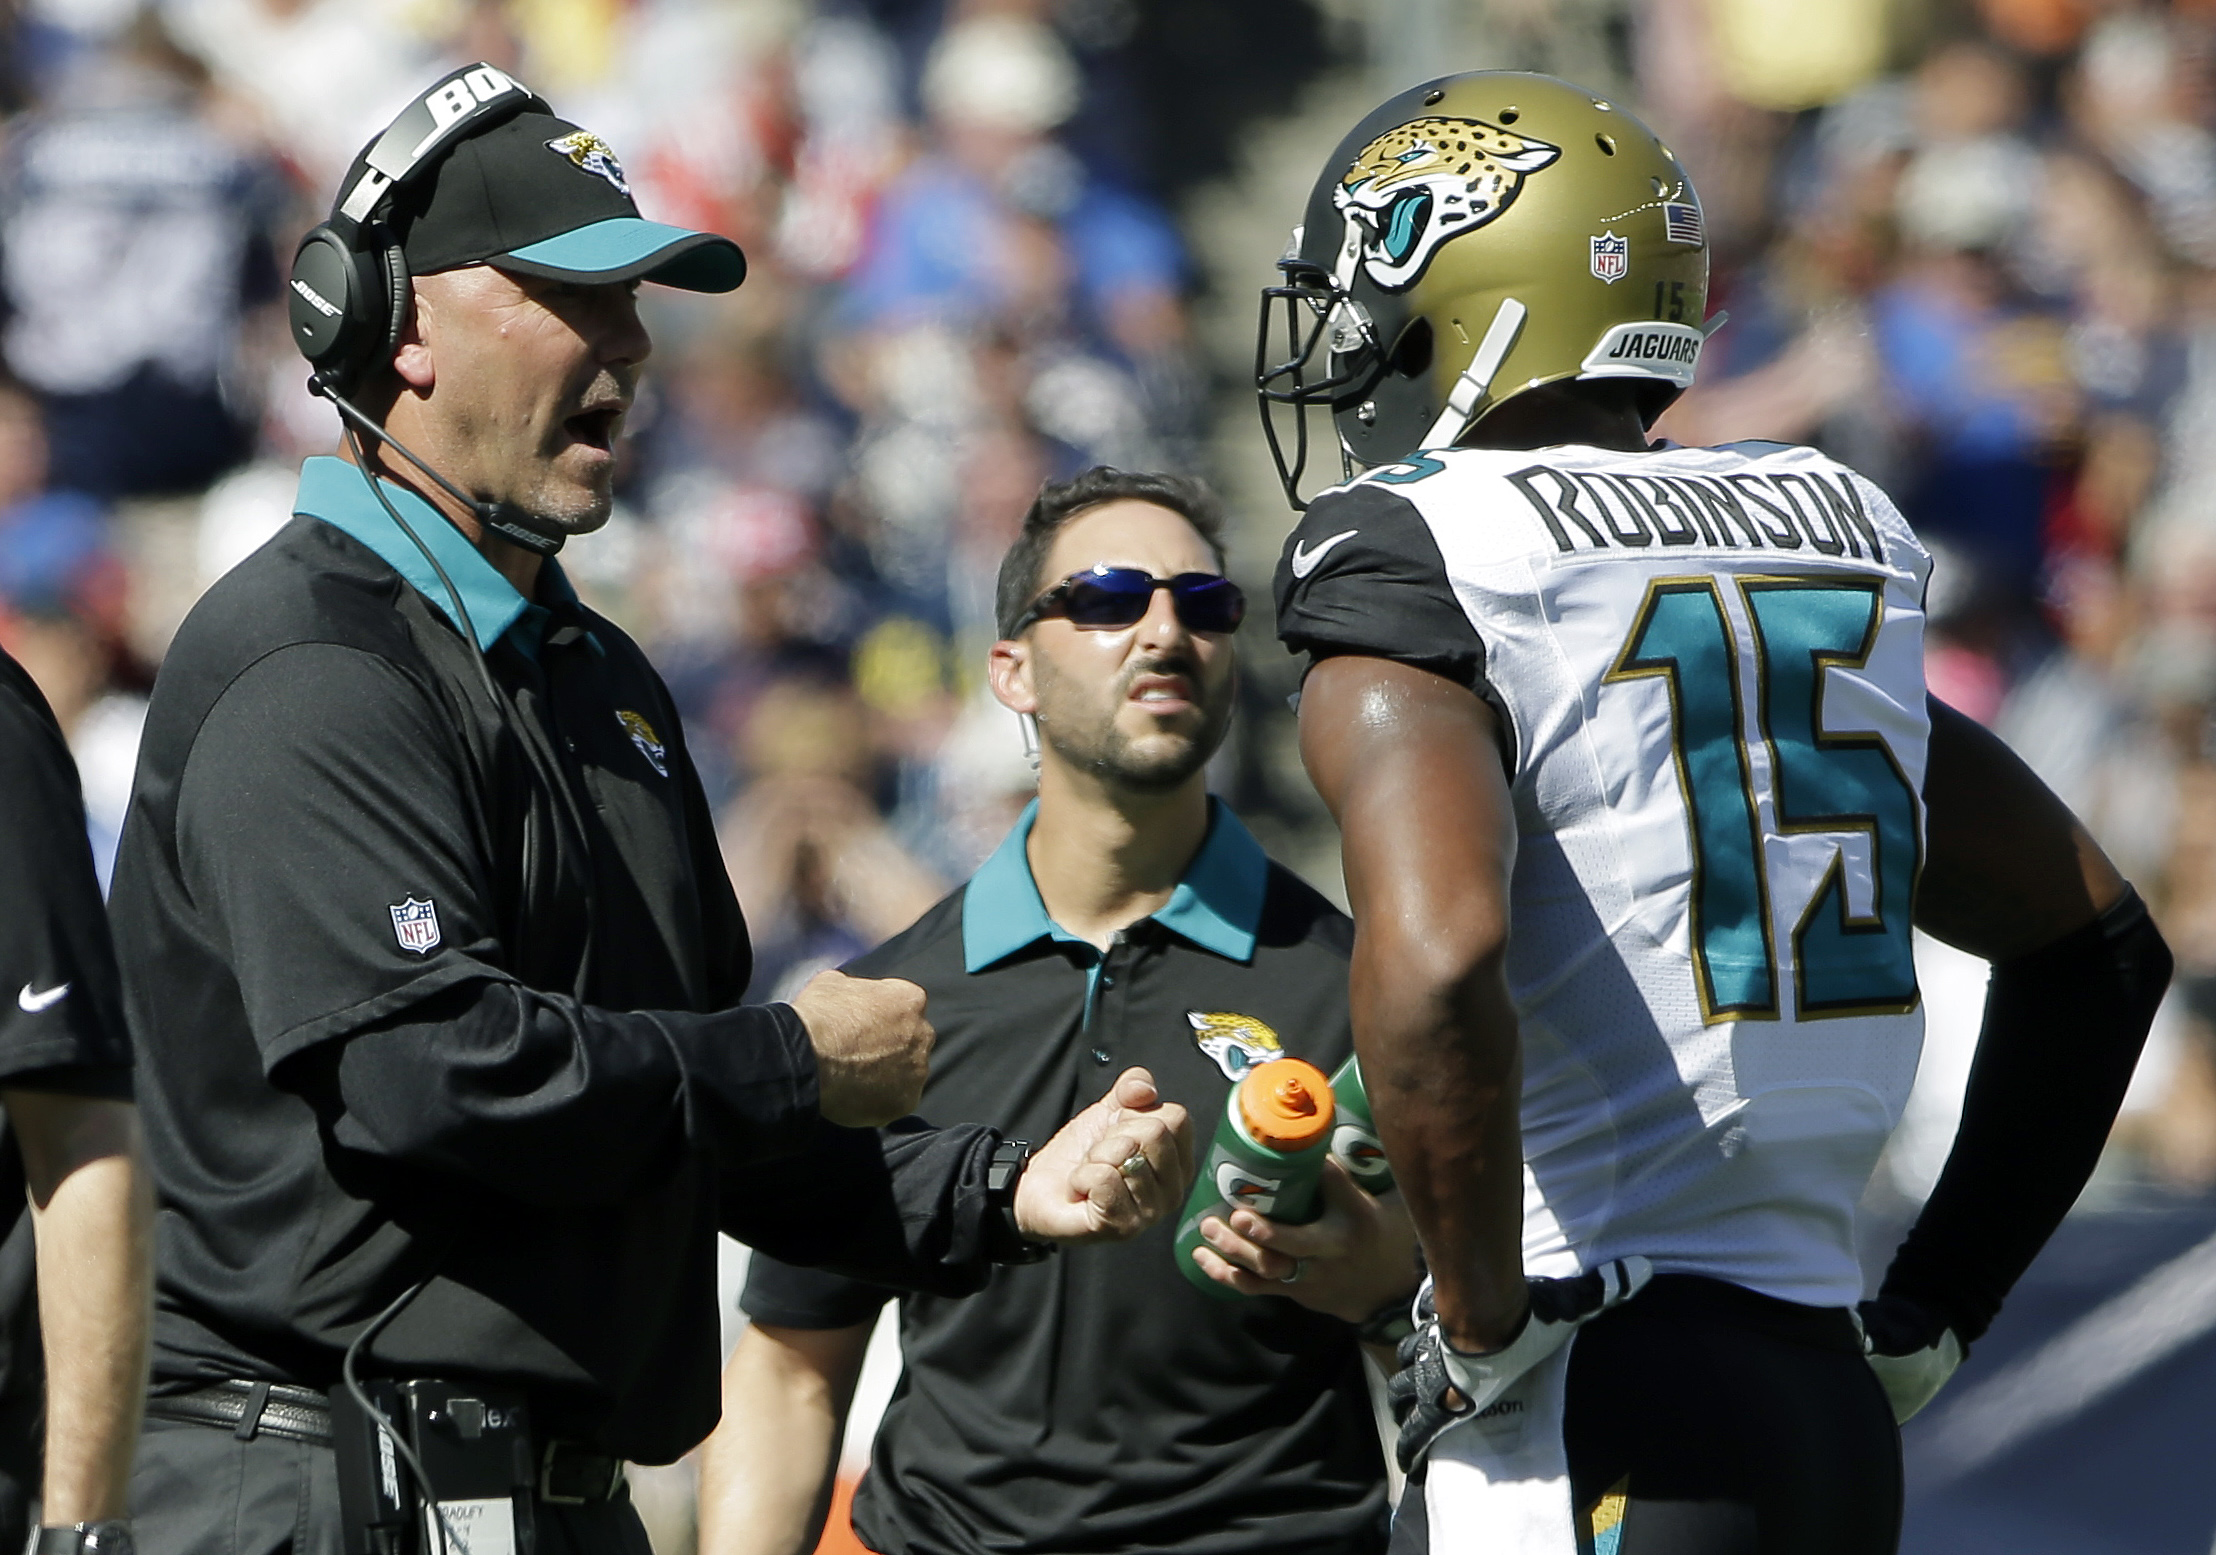 Jacksonville Jaguars head coach Gus Bradley, left, talks to wide receiver Allen Robinson in the first half of an NFL football game, Sunday, Sept. 27, 2015, in Foxborough, Mass. (AP Photo/Steven Senne)